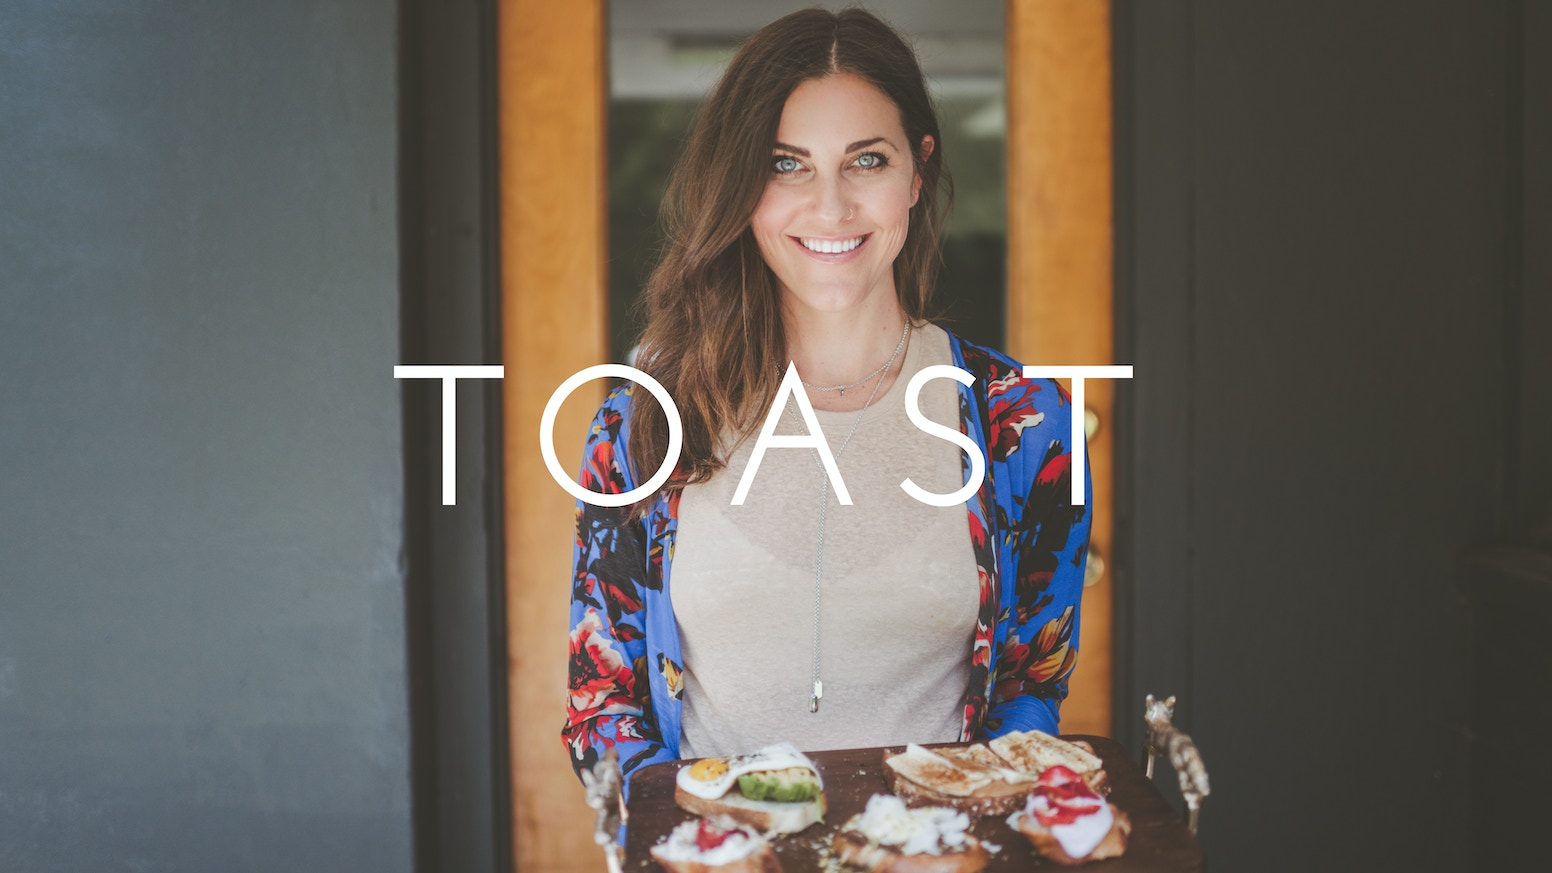 A cook book of 62 beautiful, approachable toast recipes for every craving.